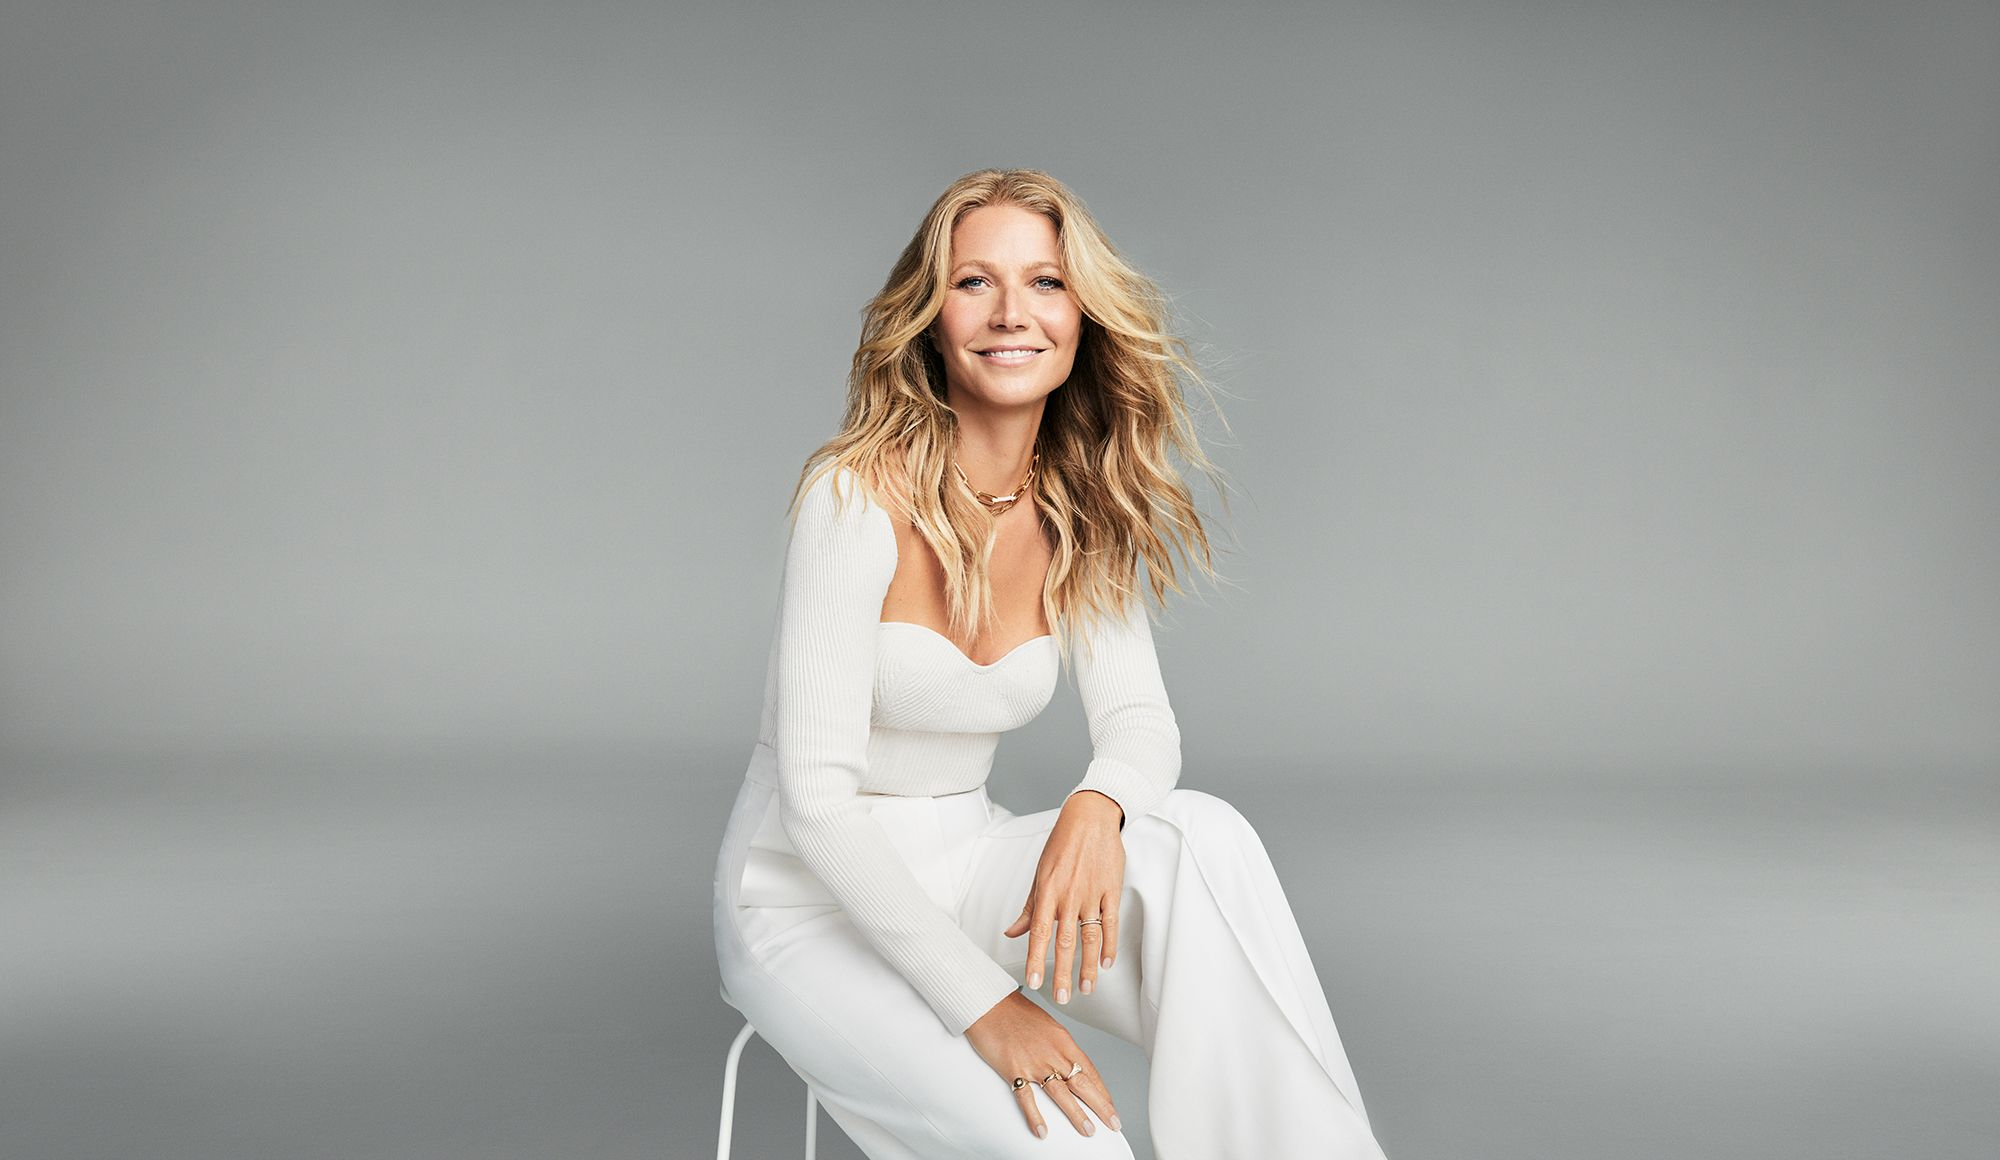 Exclusive Interview: Face To Face With Gwyneth Paltrow On Beauty, Lifestyle, And Aging Gracefully